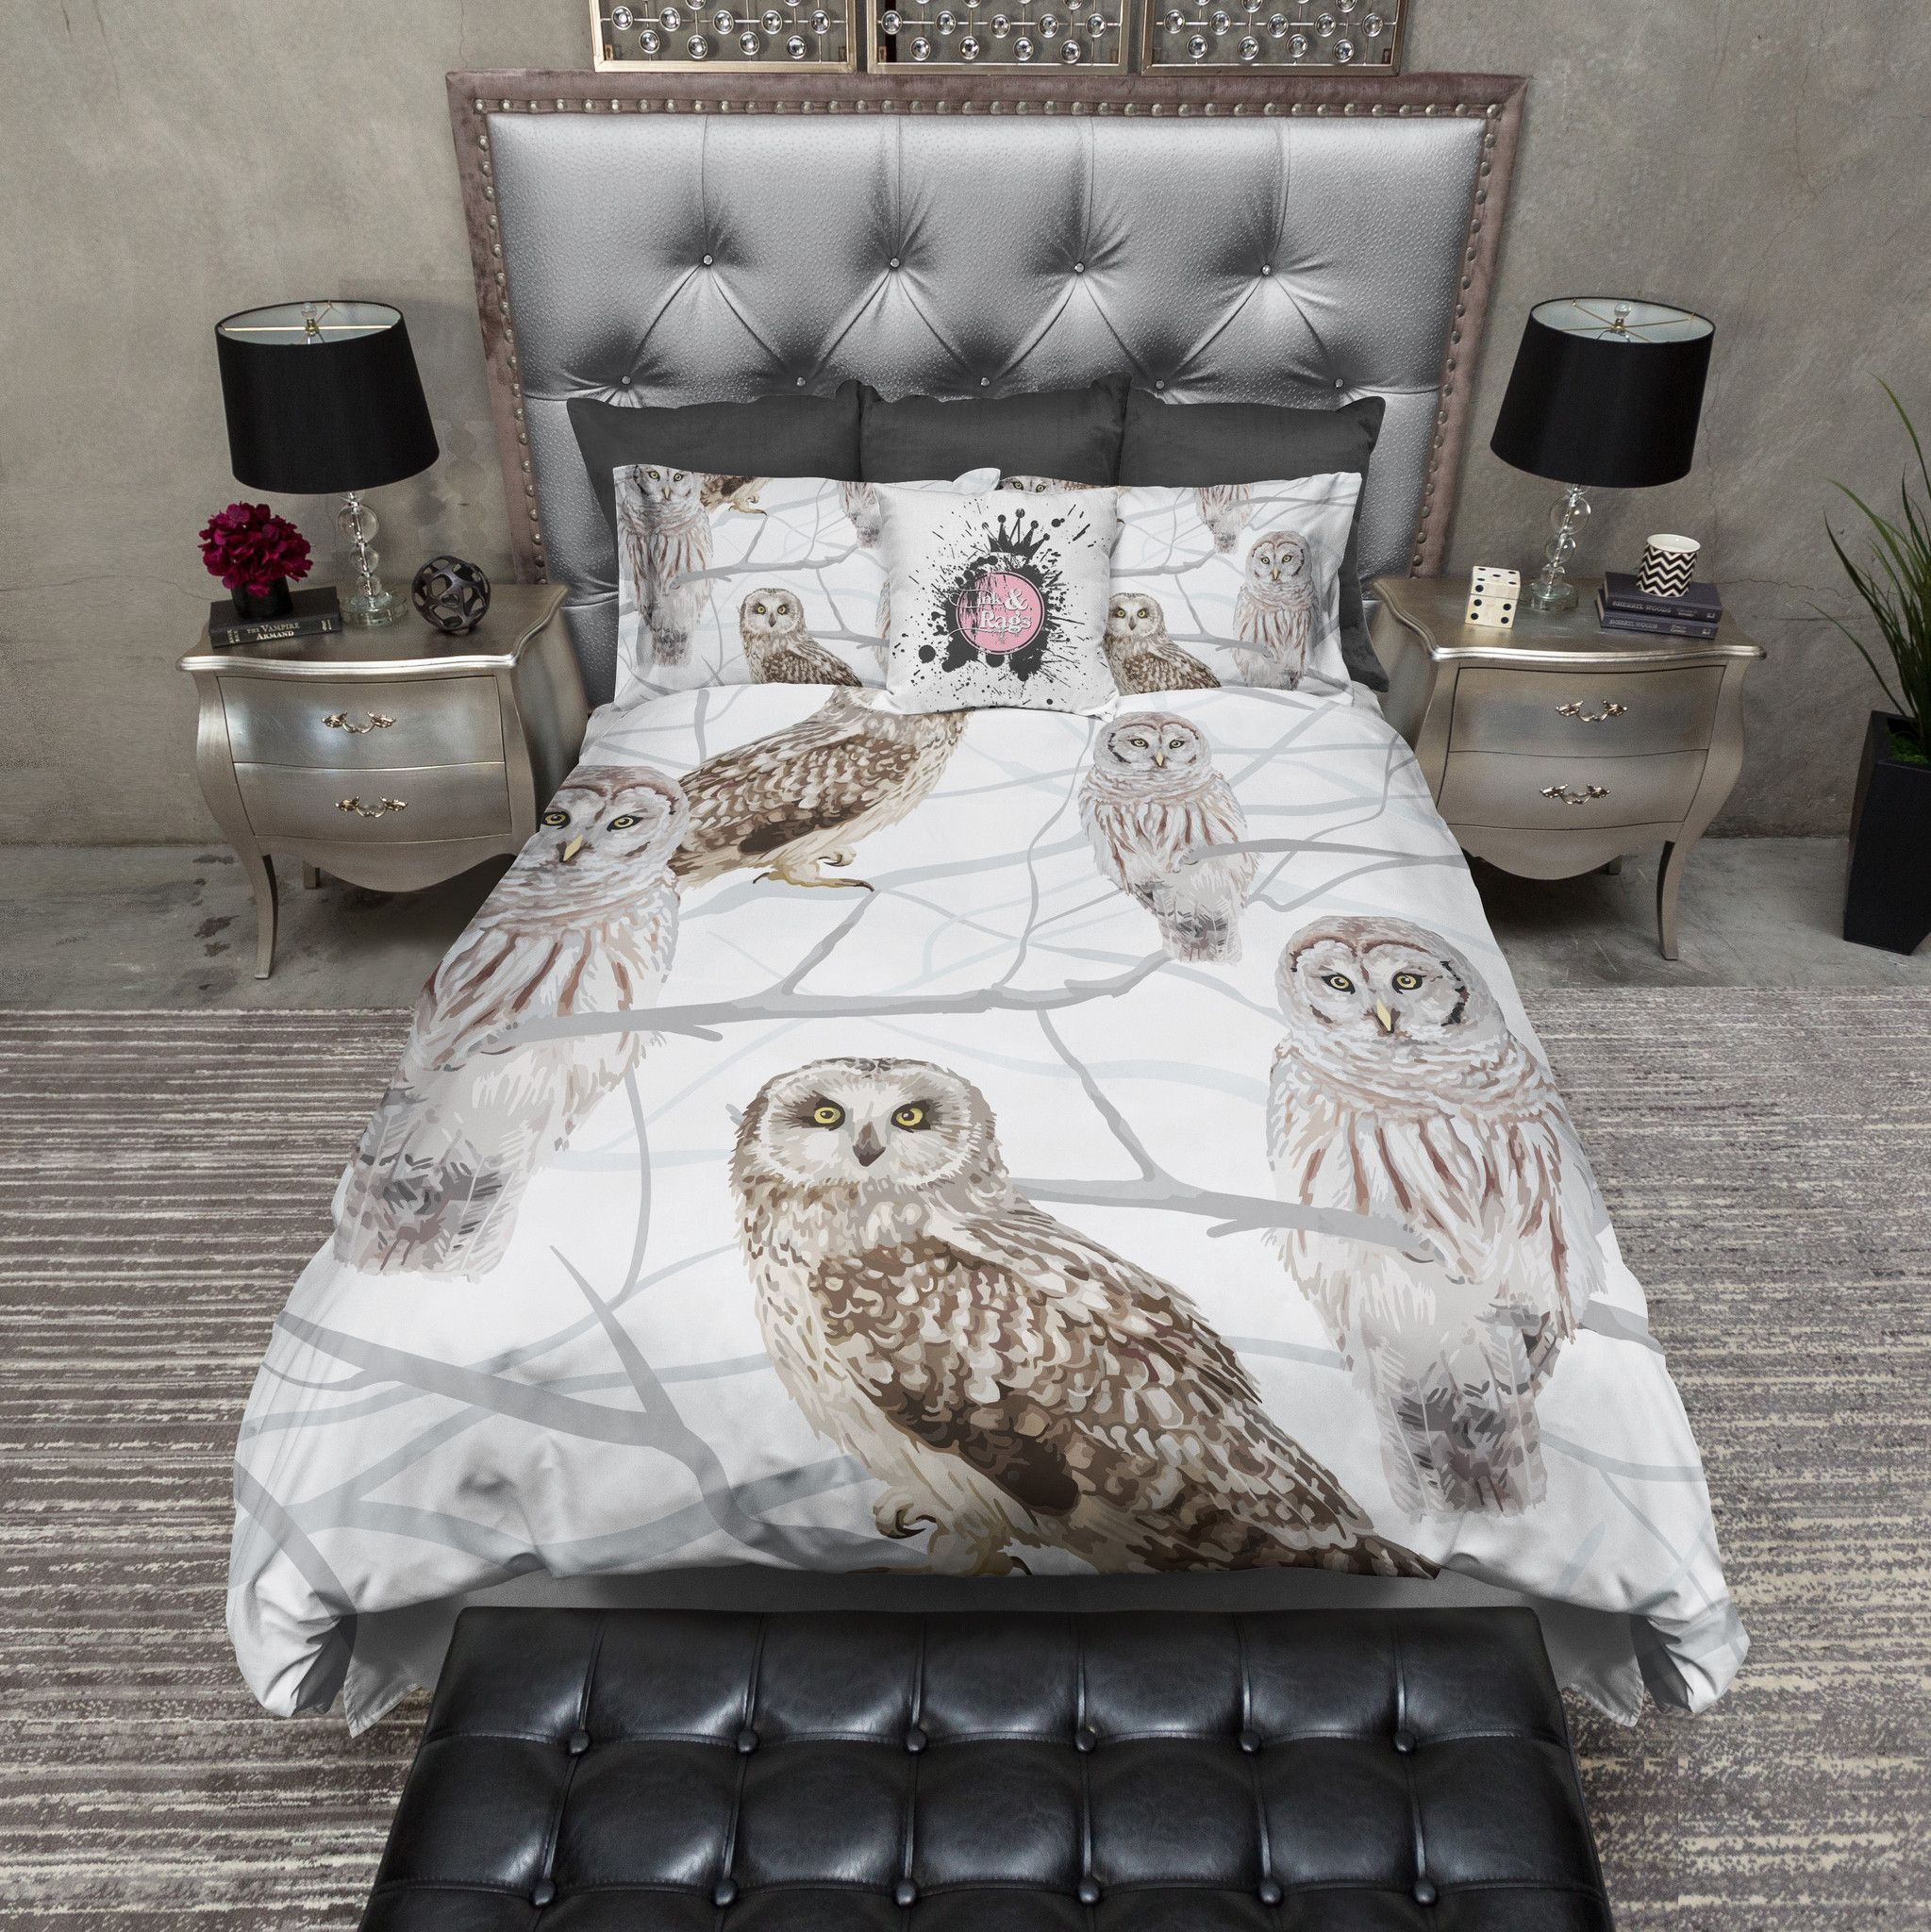 Snow And Owls Bedding Collection In 2020 Bed Linens Luxury Duvet Bedding Sets Owl Bedding